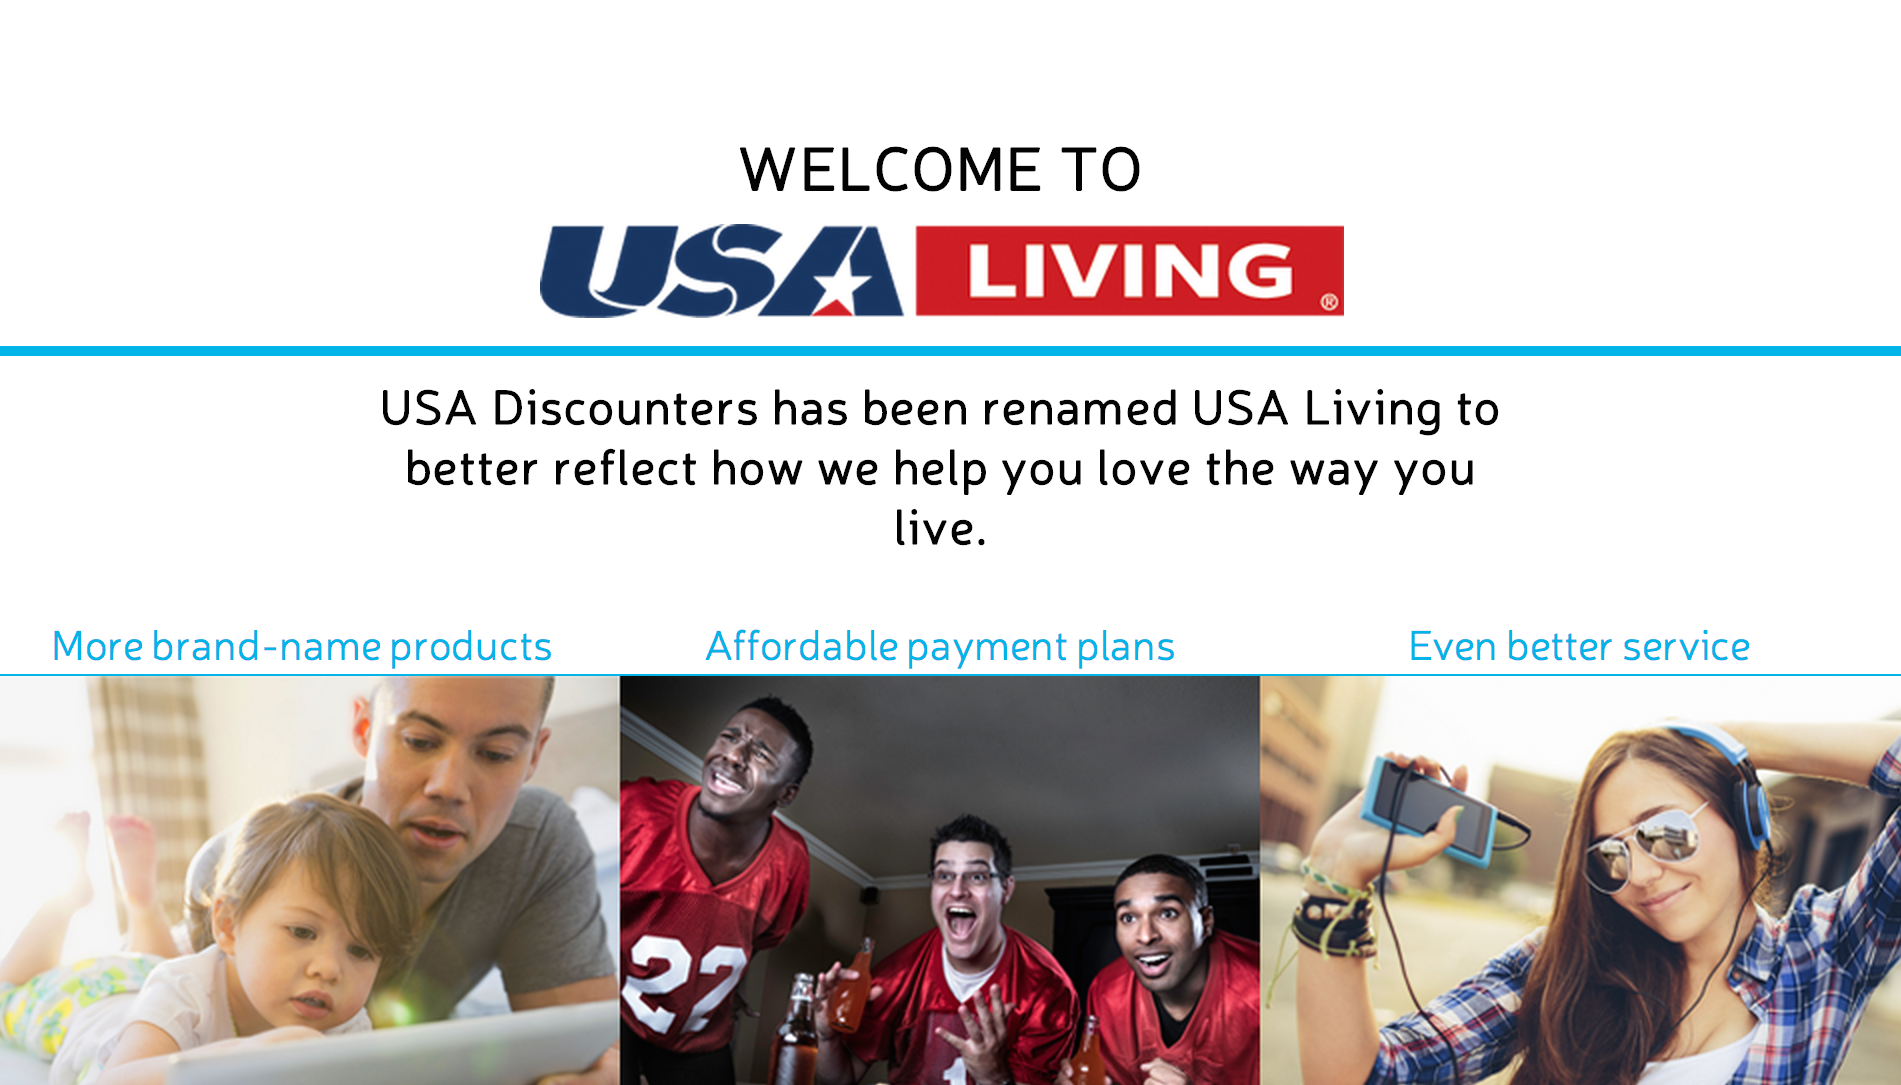 USA Discounters is now USA Living, but it's still charging too much for its products and still suing soldiers with out-of-state addresses.